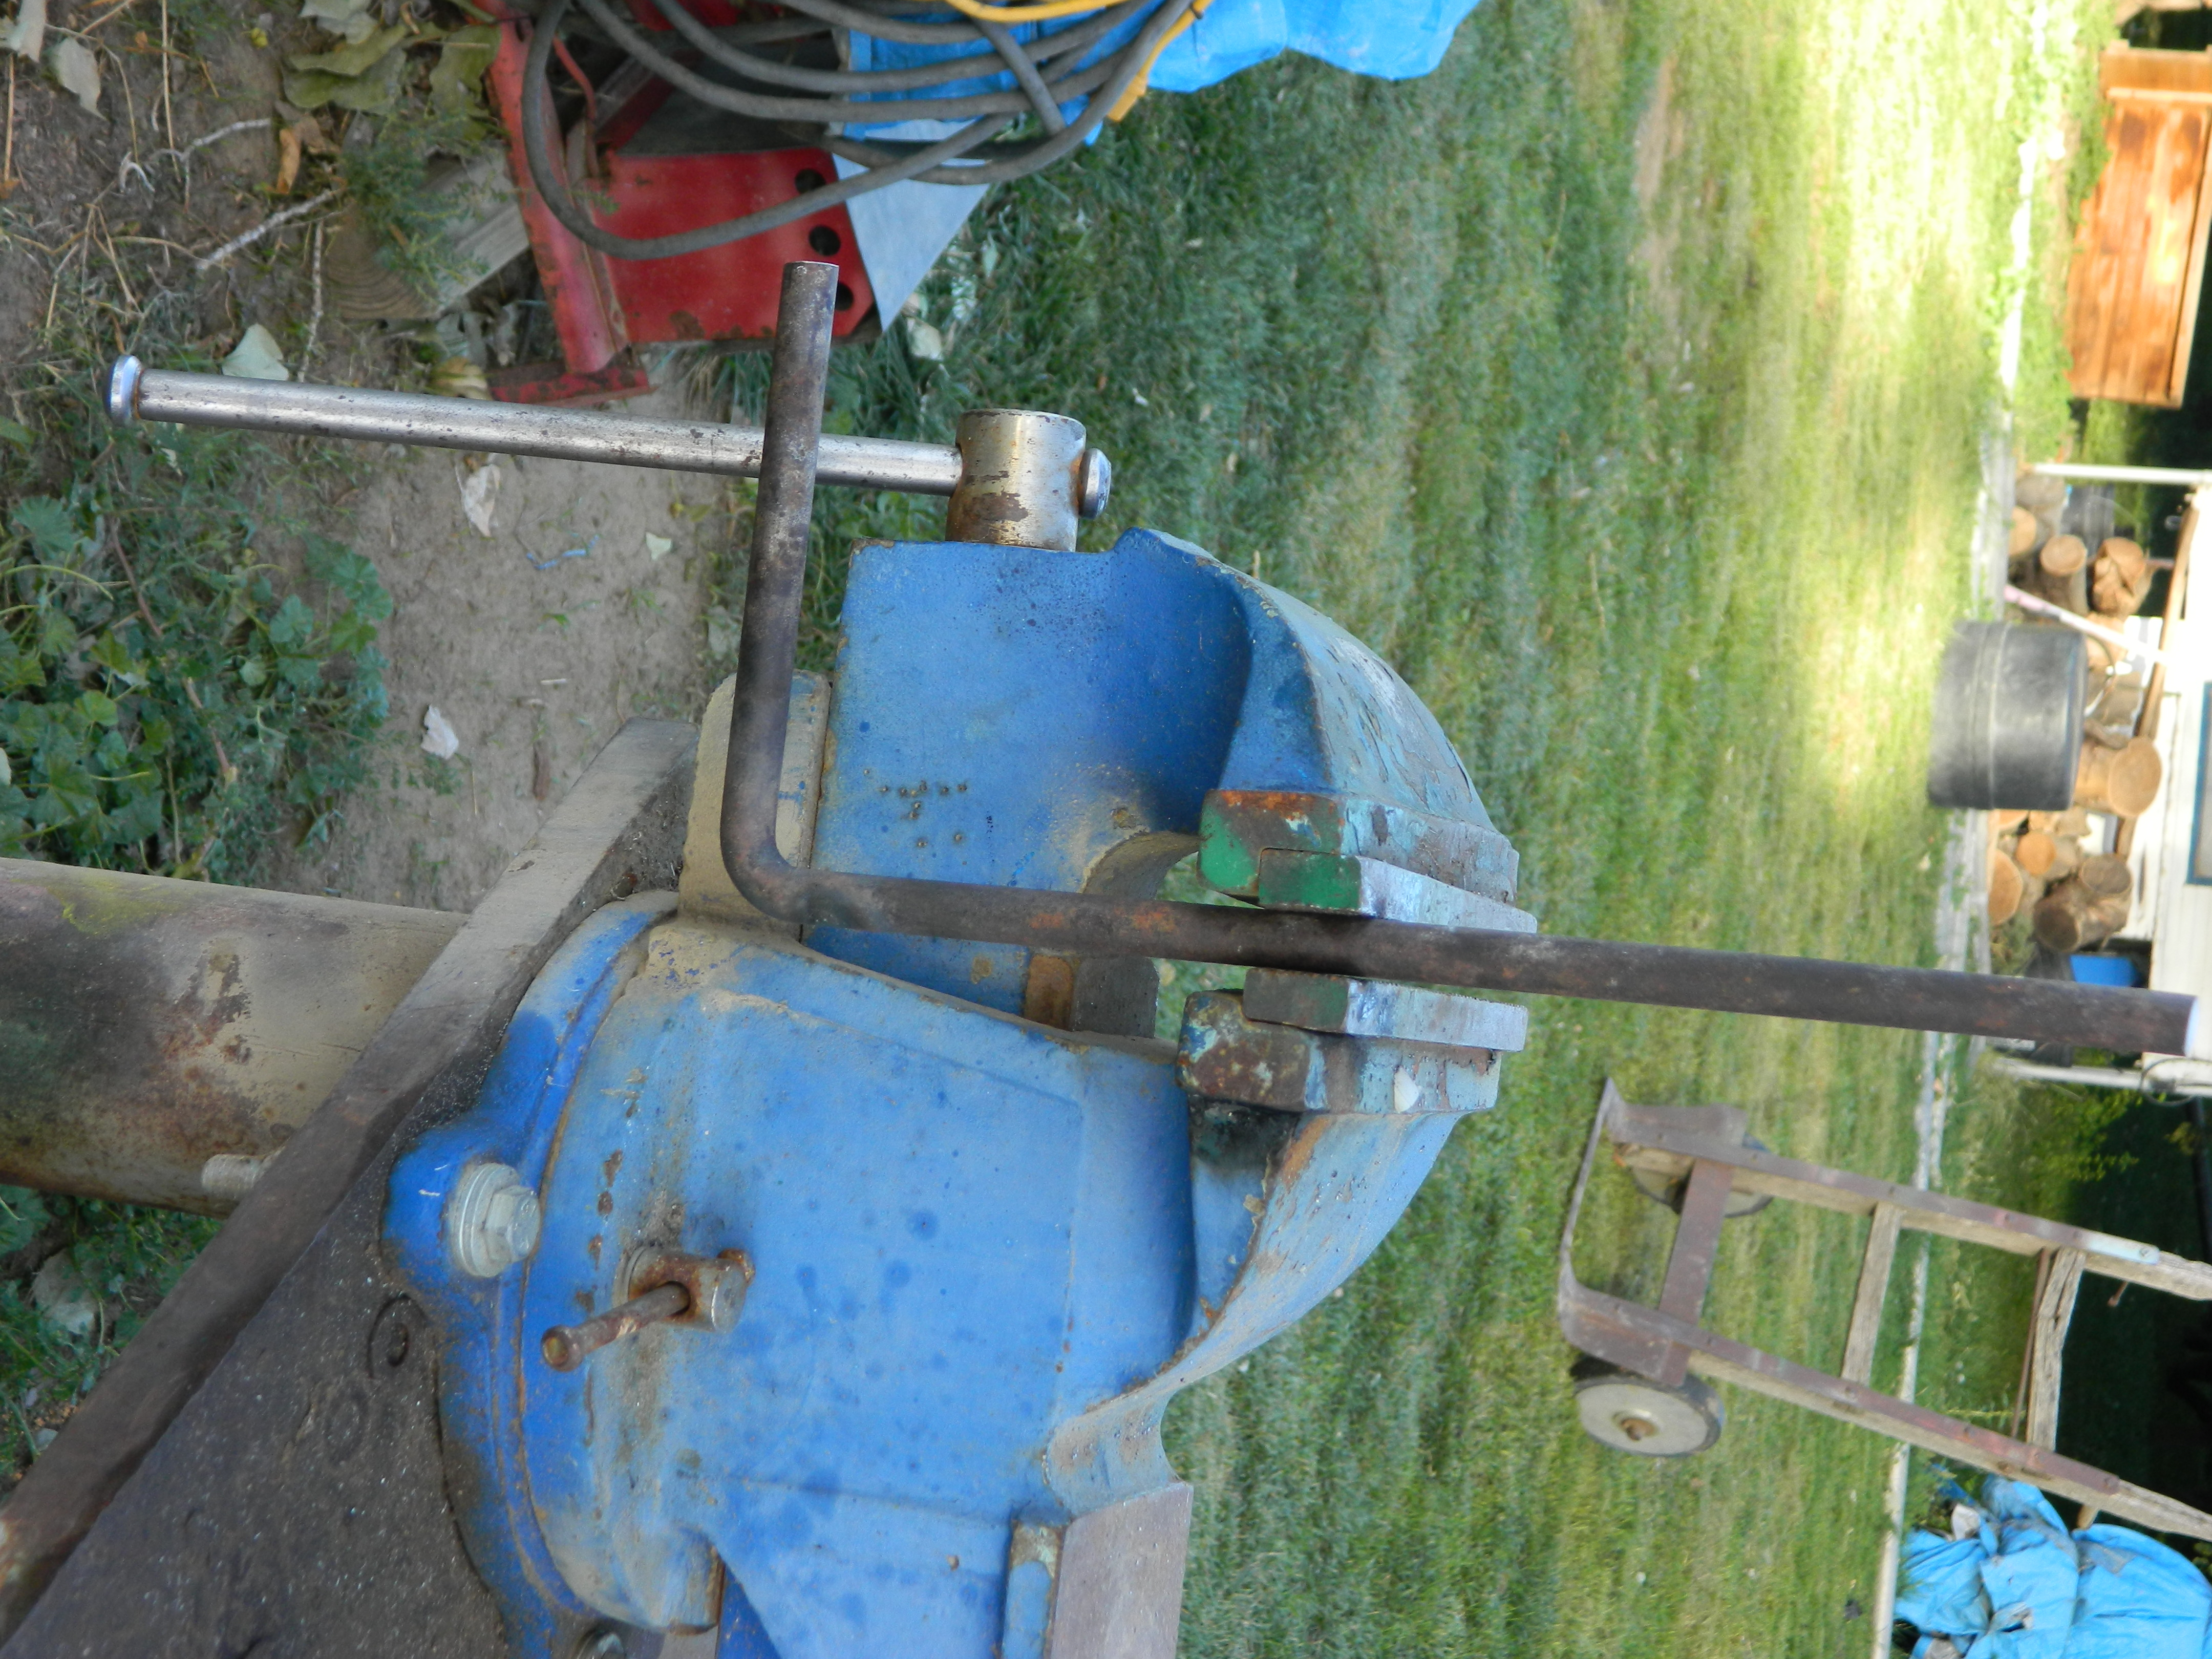 Picture of Hose Holder and Valves